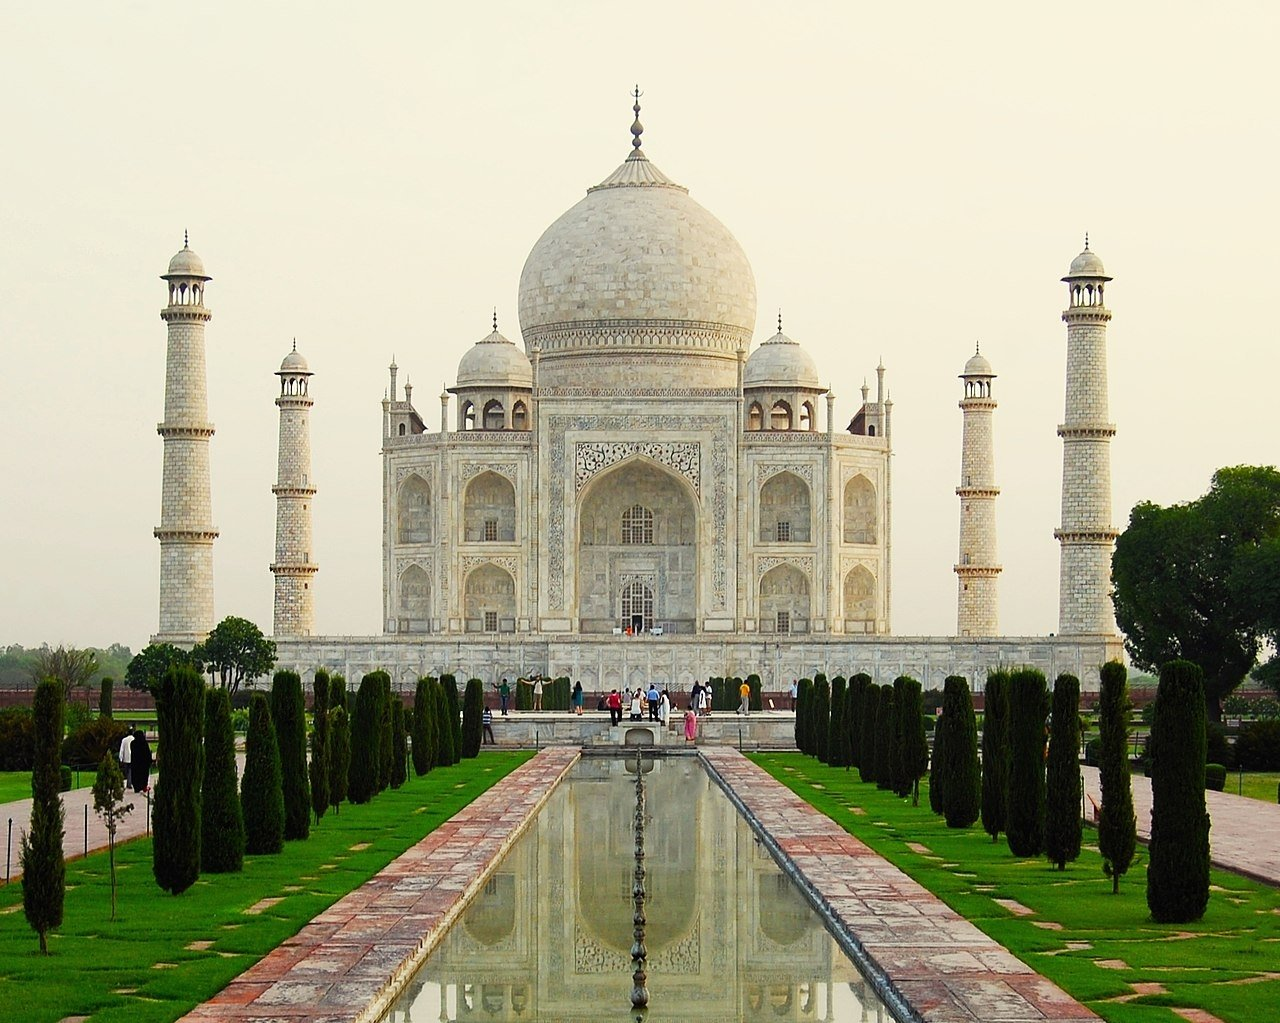 An exterior view of India's Taj Mahal, one of the most important works of Islamic mausoleum architecture.